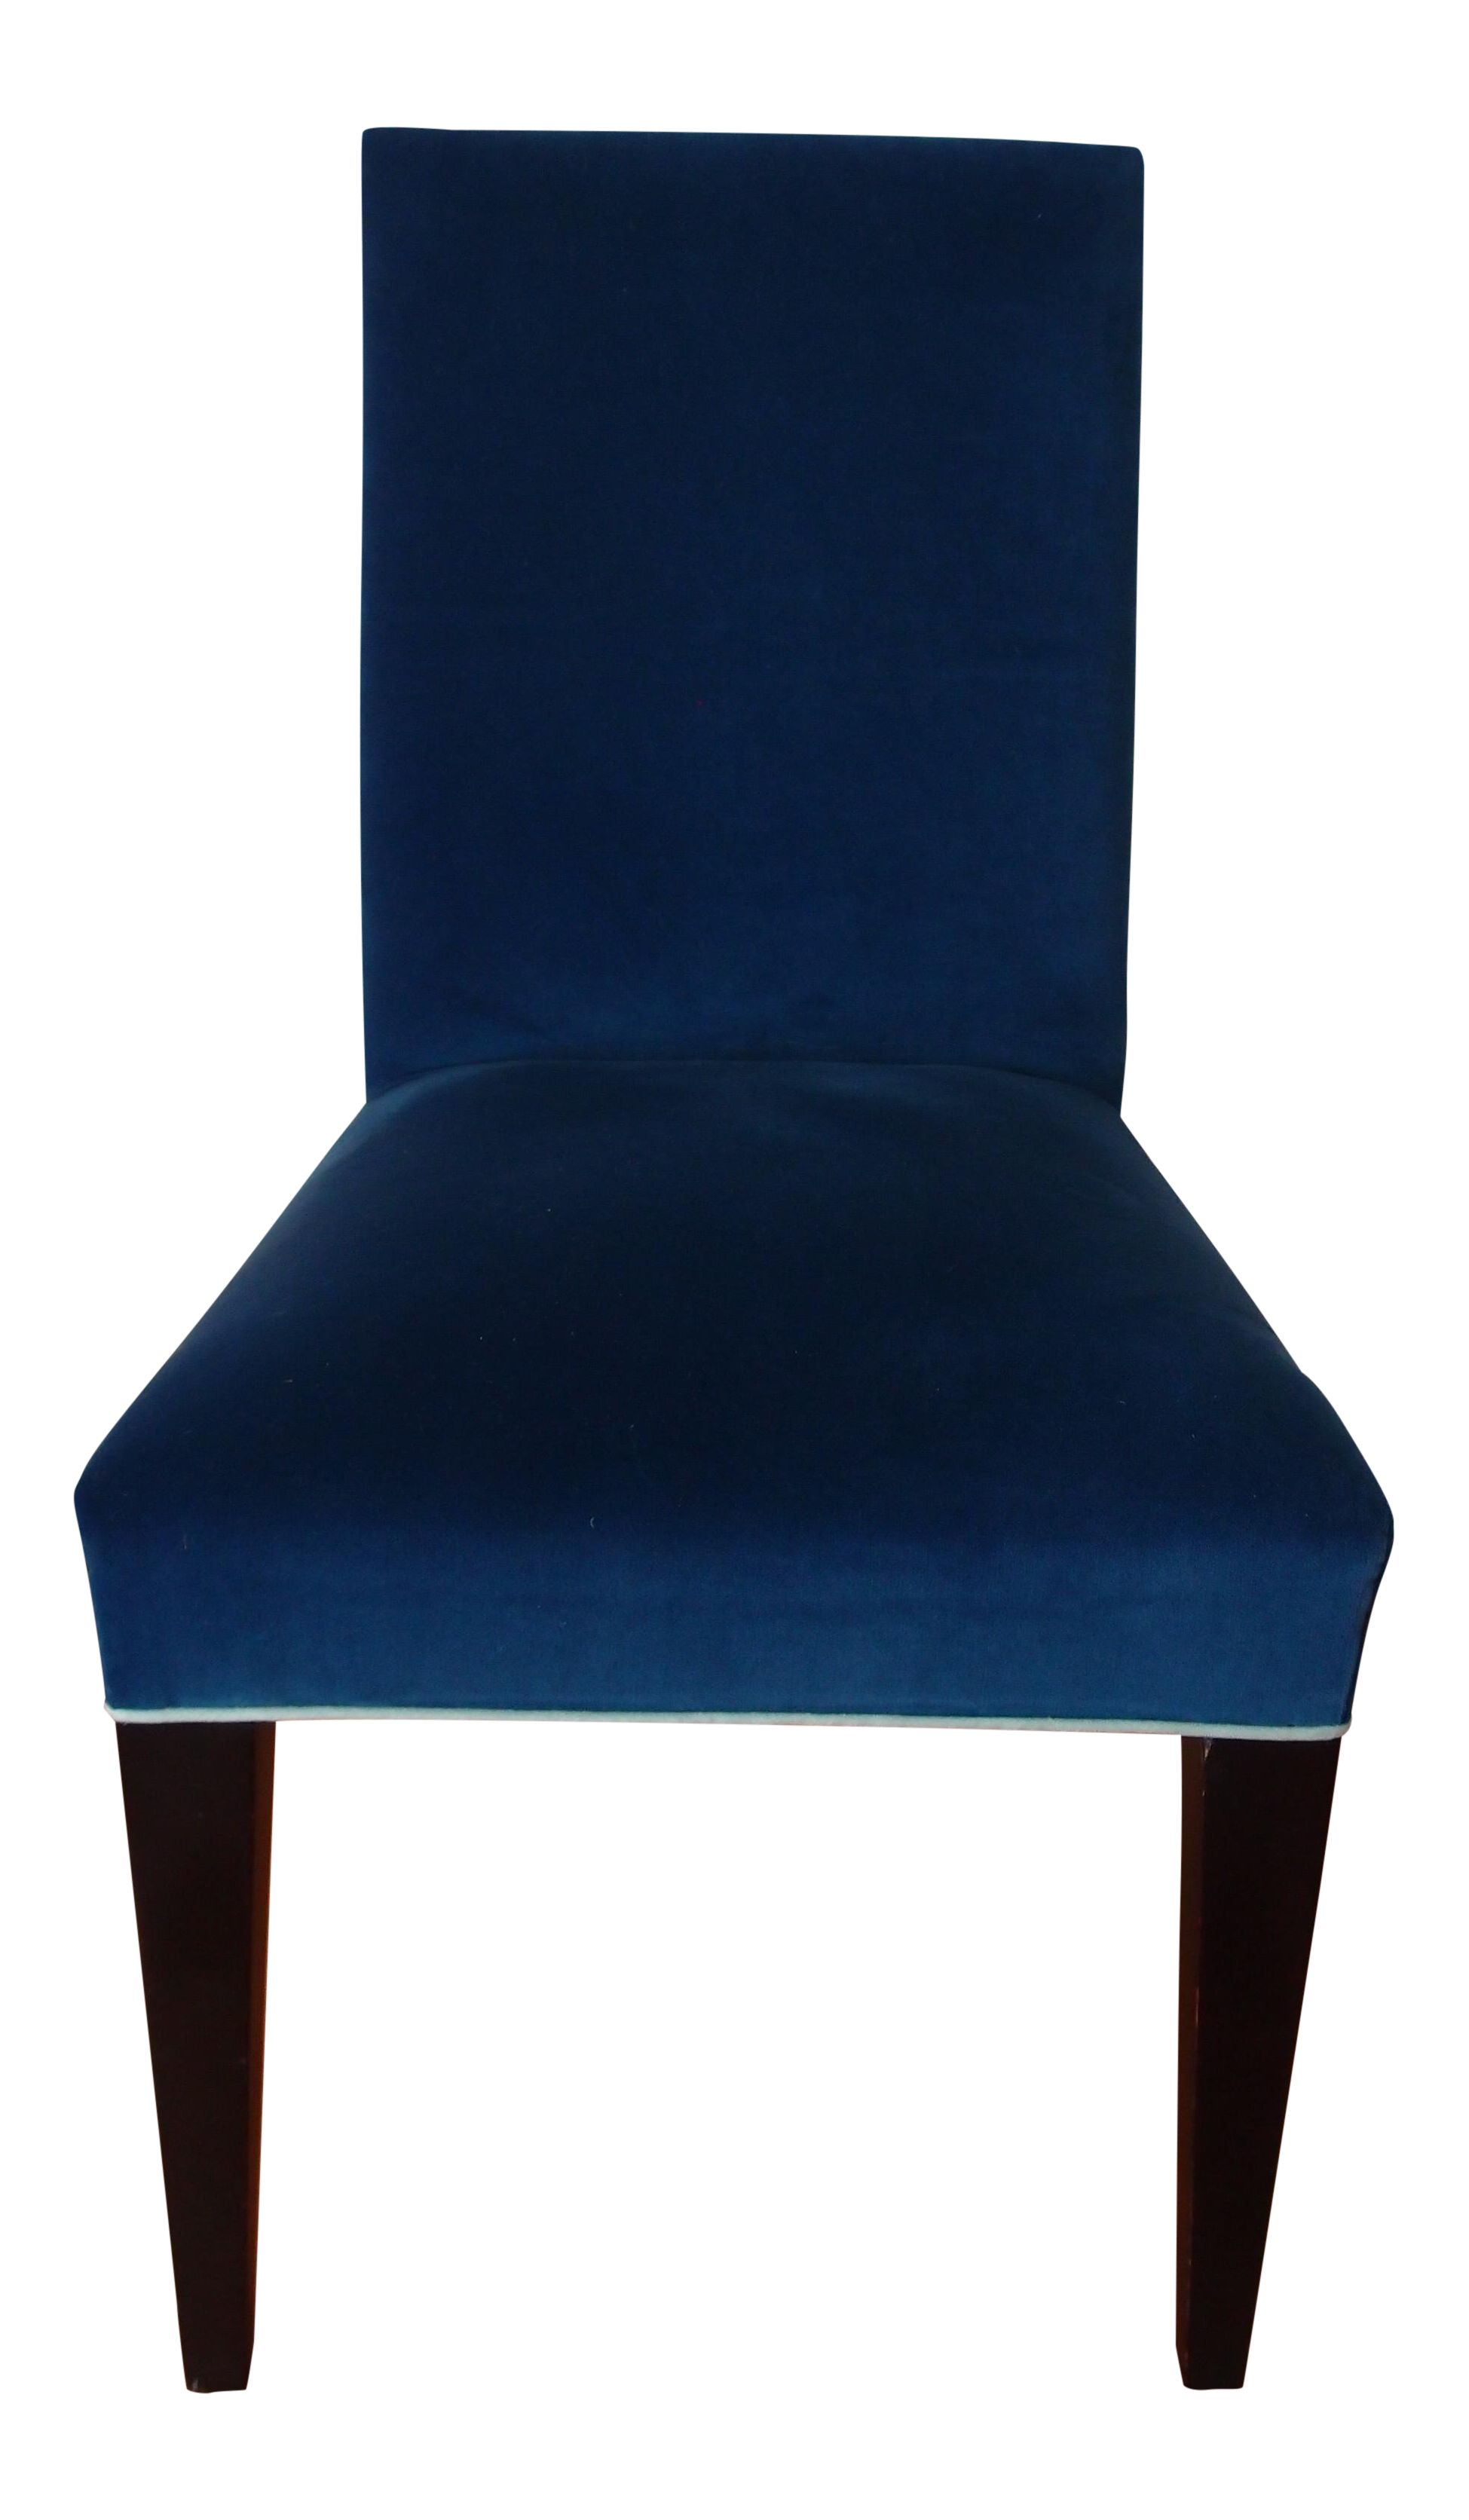 Mitchell Gold Royal Blue Velvet Desk Chair - Image 1 of 5  sc 1 st  Chairish & Mitchell Gold Royal Blue Velvet Desk Chair | Chairish